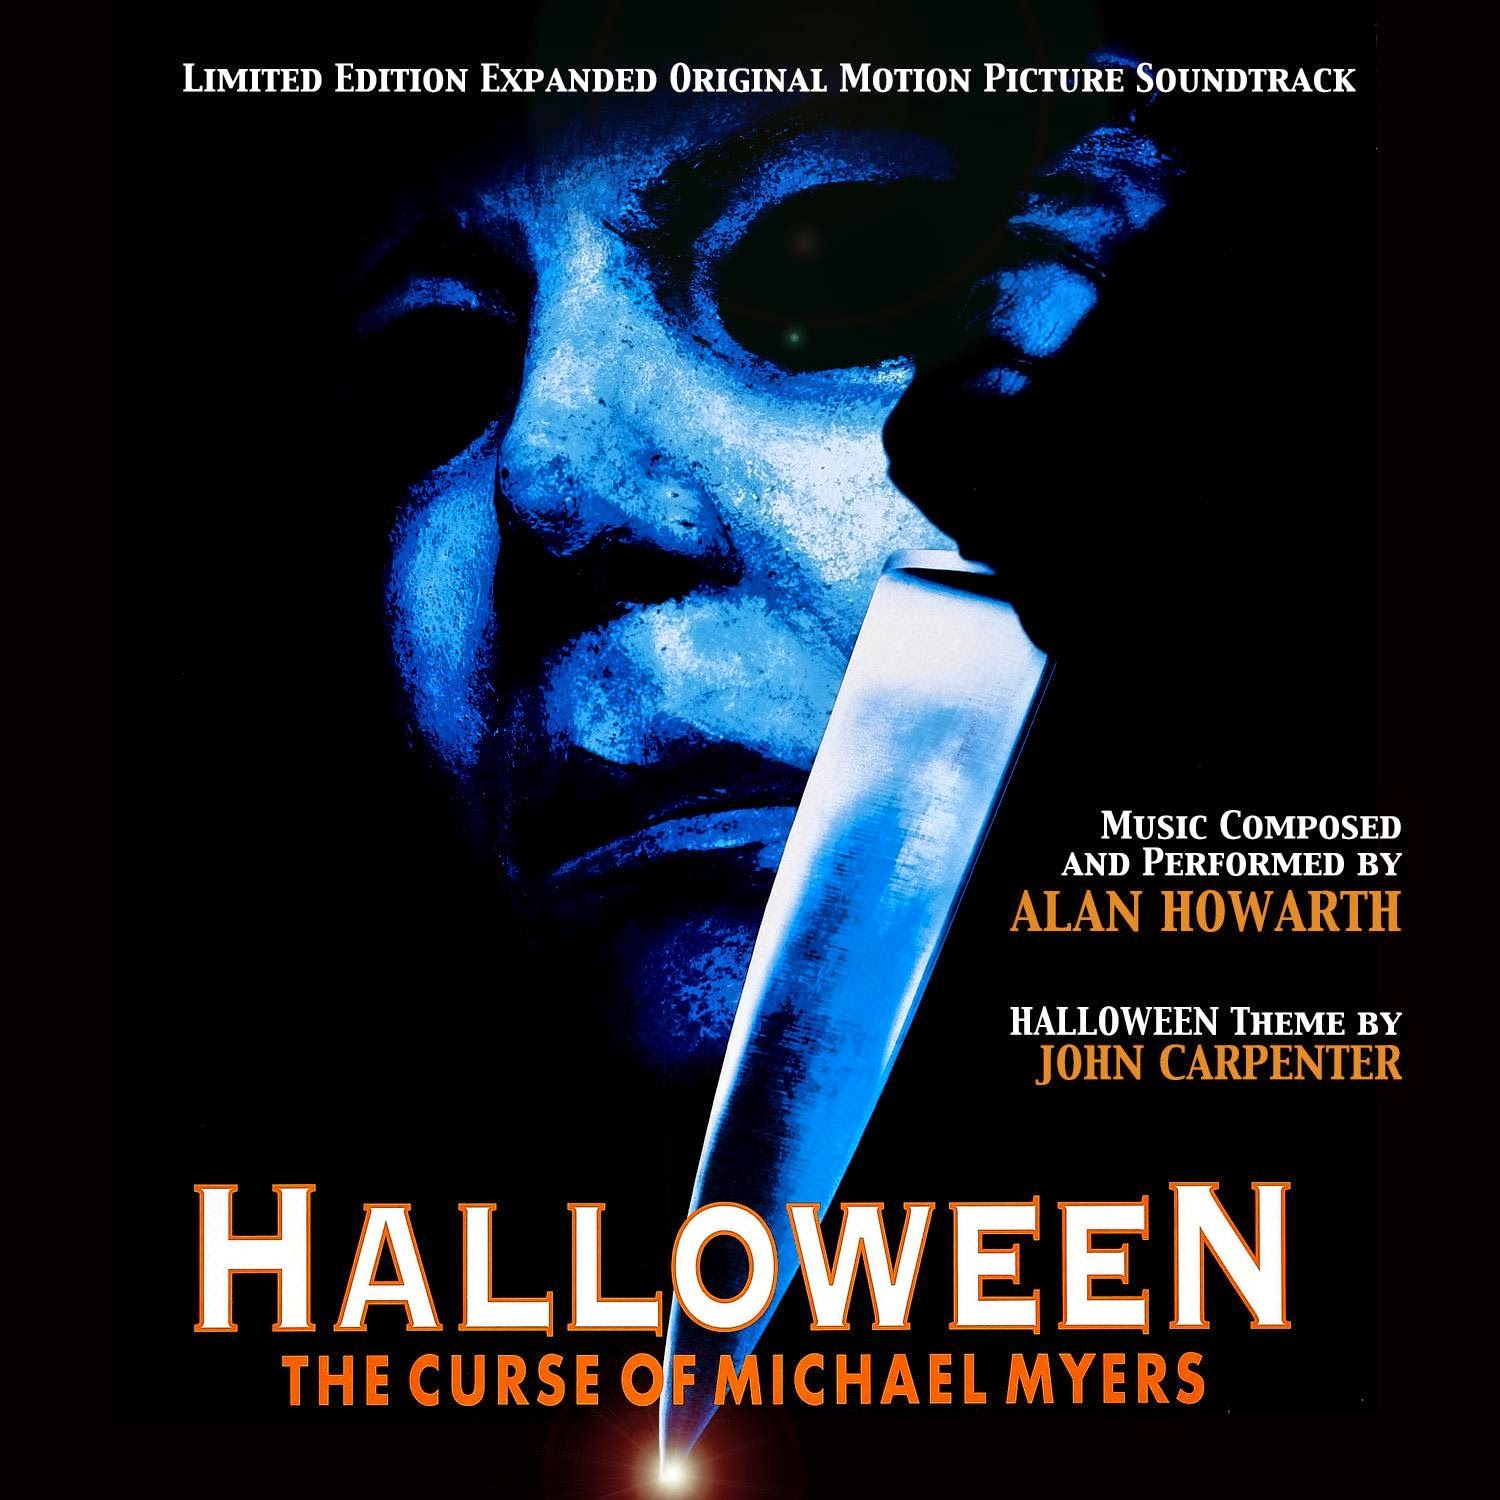 Halloween 2020 Expanded Score Halloween 6' Double CD Expanded Soundtrack Cover Art Revealed